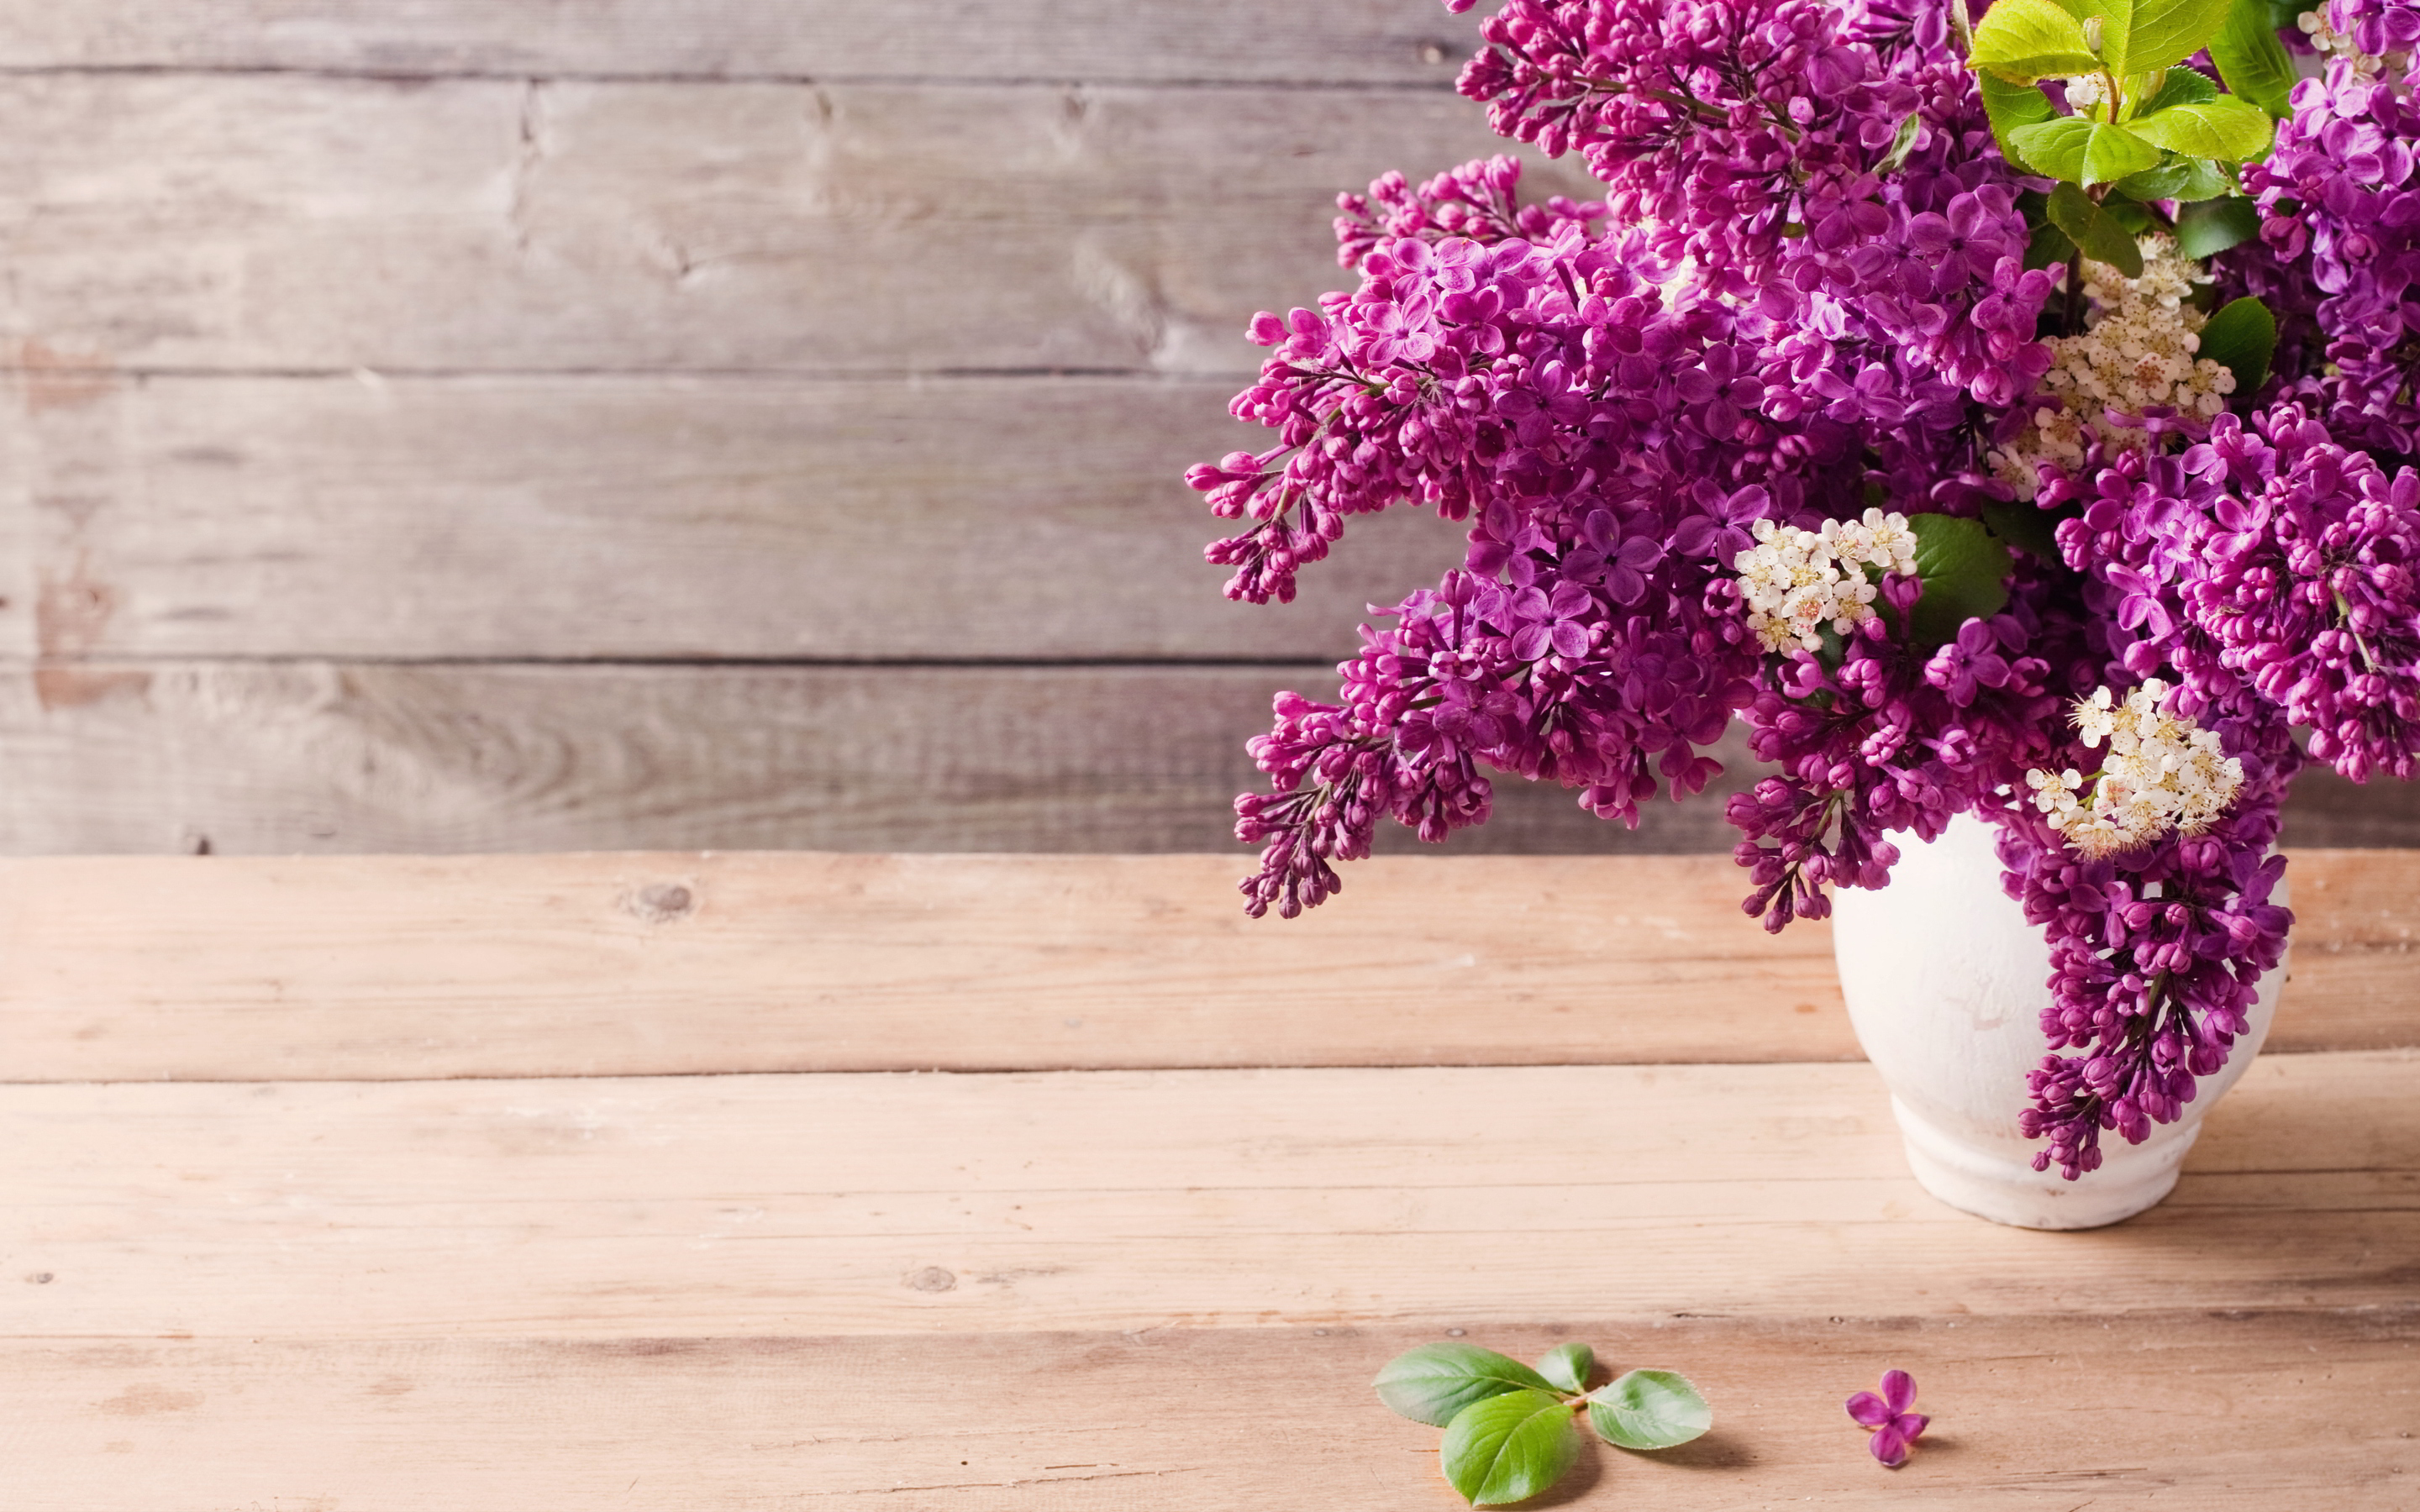 Vase lilac flowers